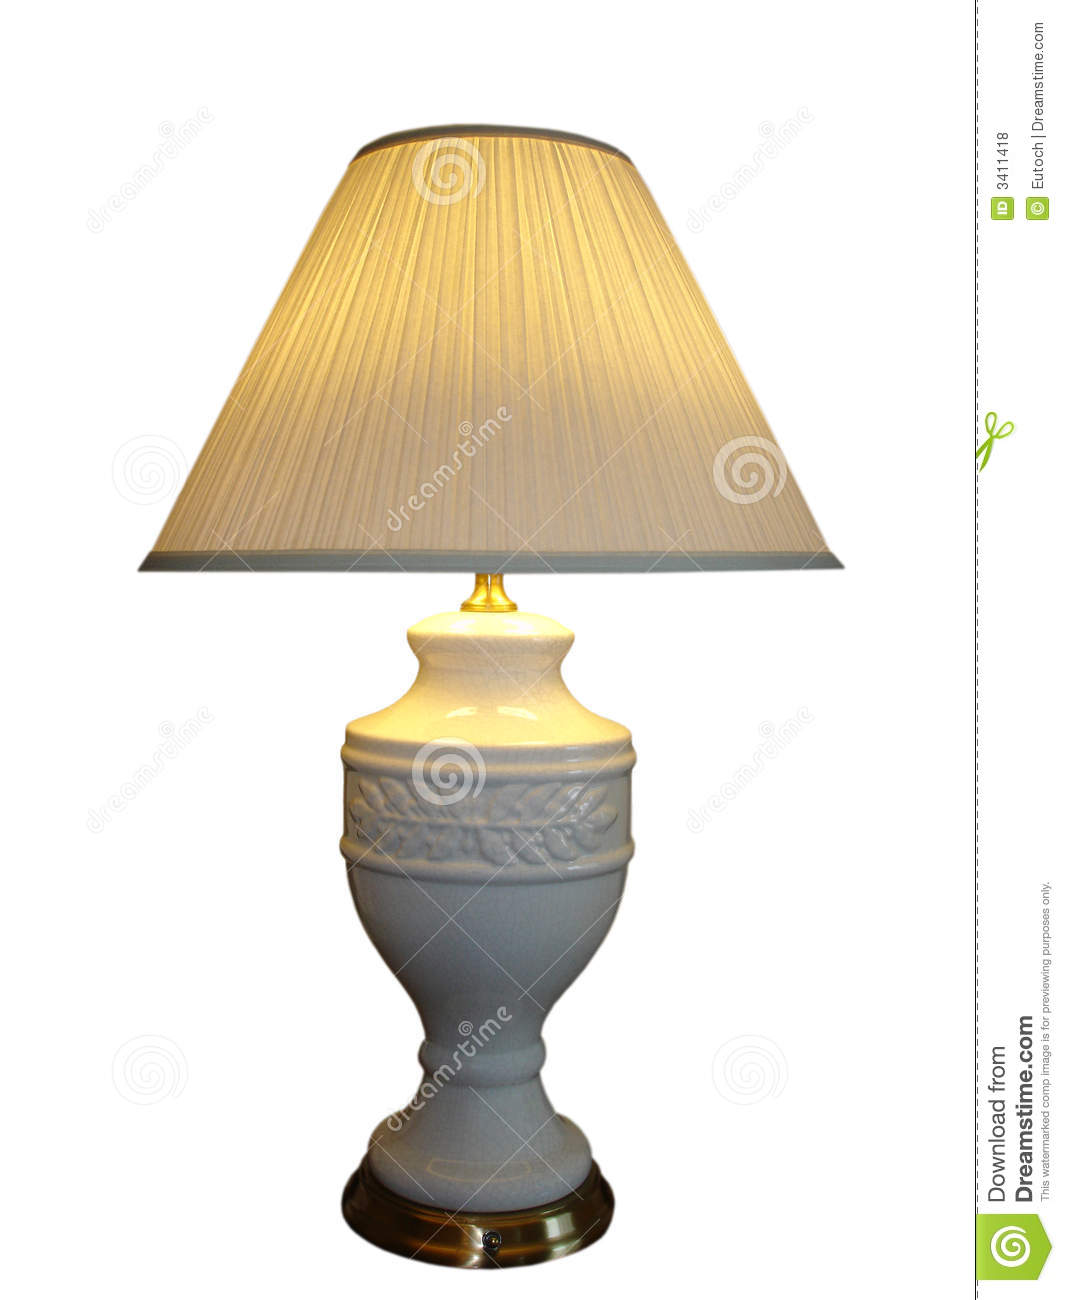 Electric Lamp Royalty Free Stock Photos Image 3411418